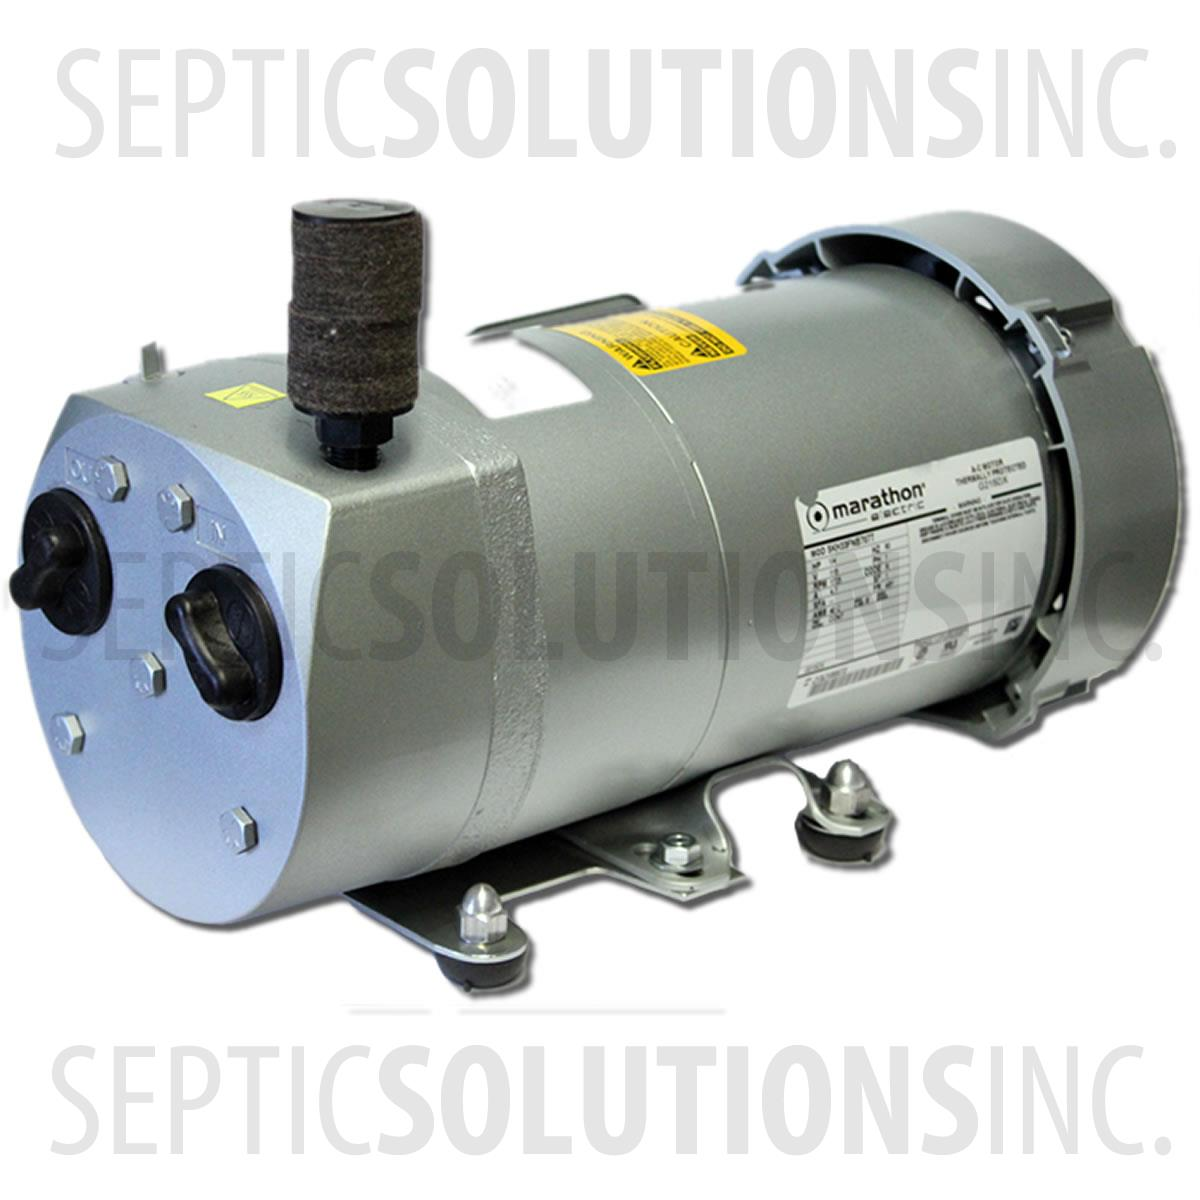 CS500RV_1?w=600 clearstream aerobic septic system air pumps and repair parts  at gsmportal.co